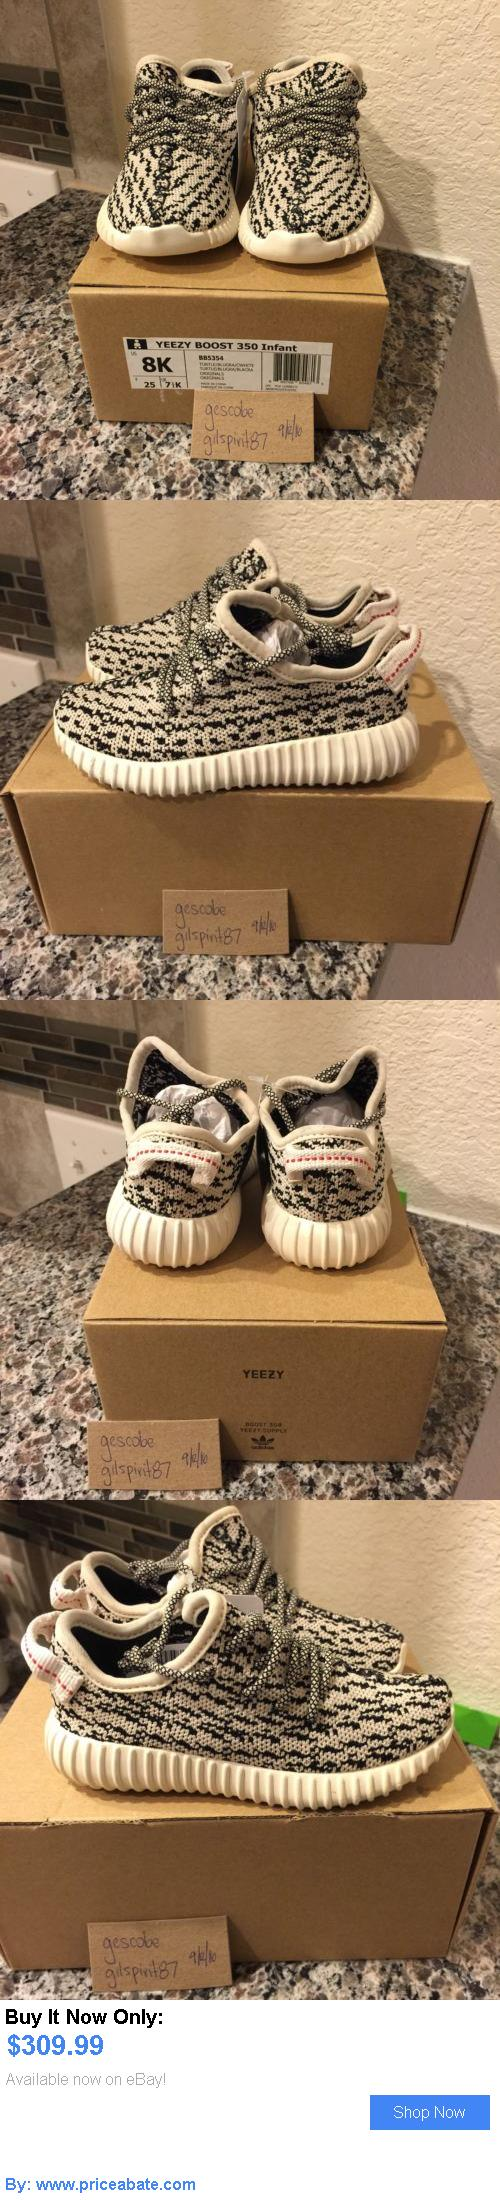 Baby Girls Shoes Adidas Yeezy Boost 350 Infant Turtle Dove Size 8k New With Receipt Bb5354 Buy It Now Only 309 99 Pric Adidas Shoes Adidas Nike Adidas Girl